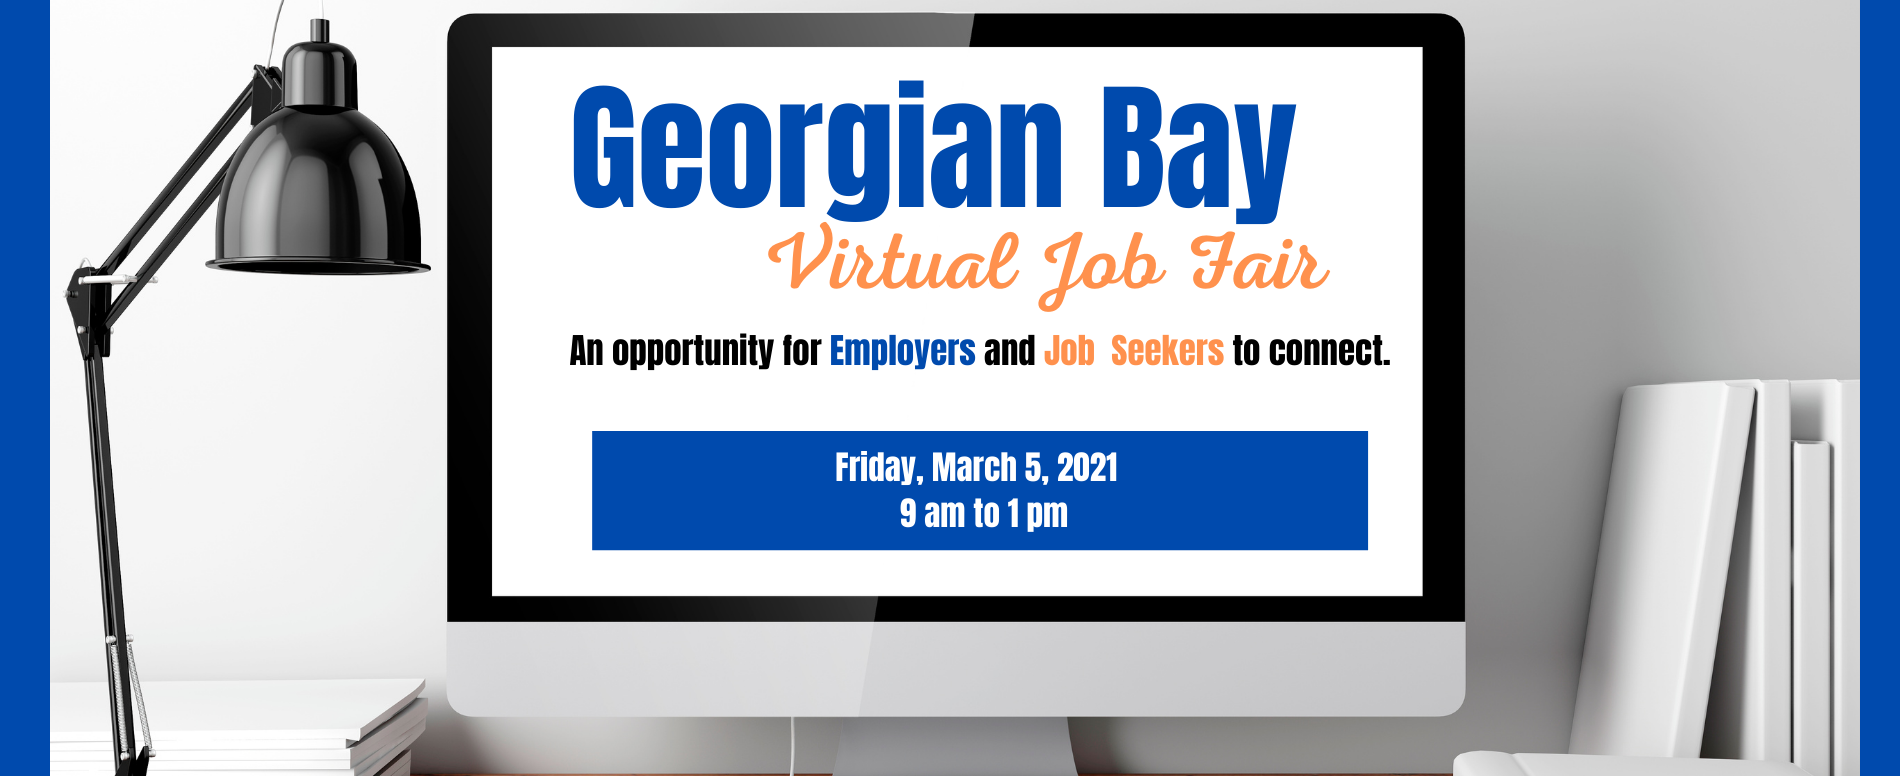 Georgian Bay Virtual Job Fair